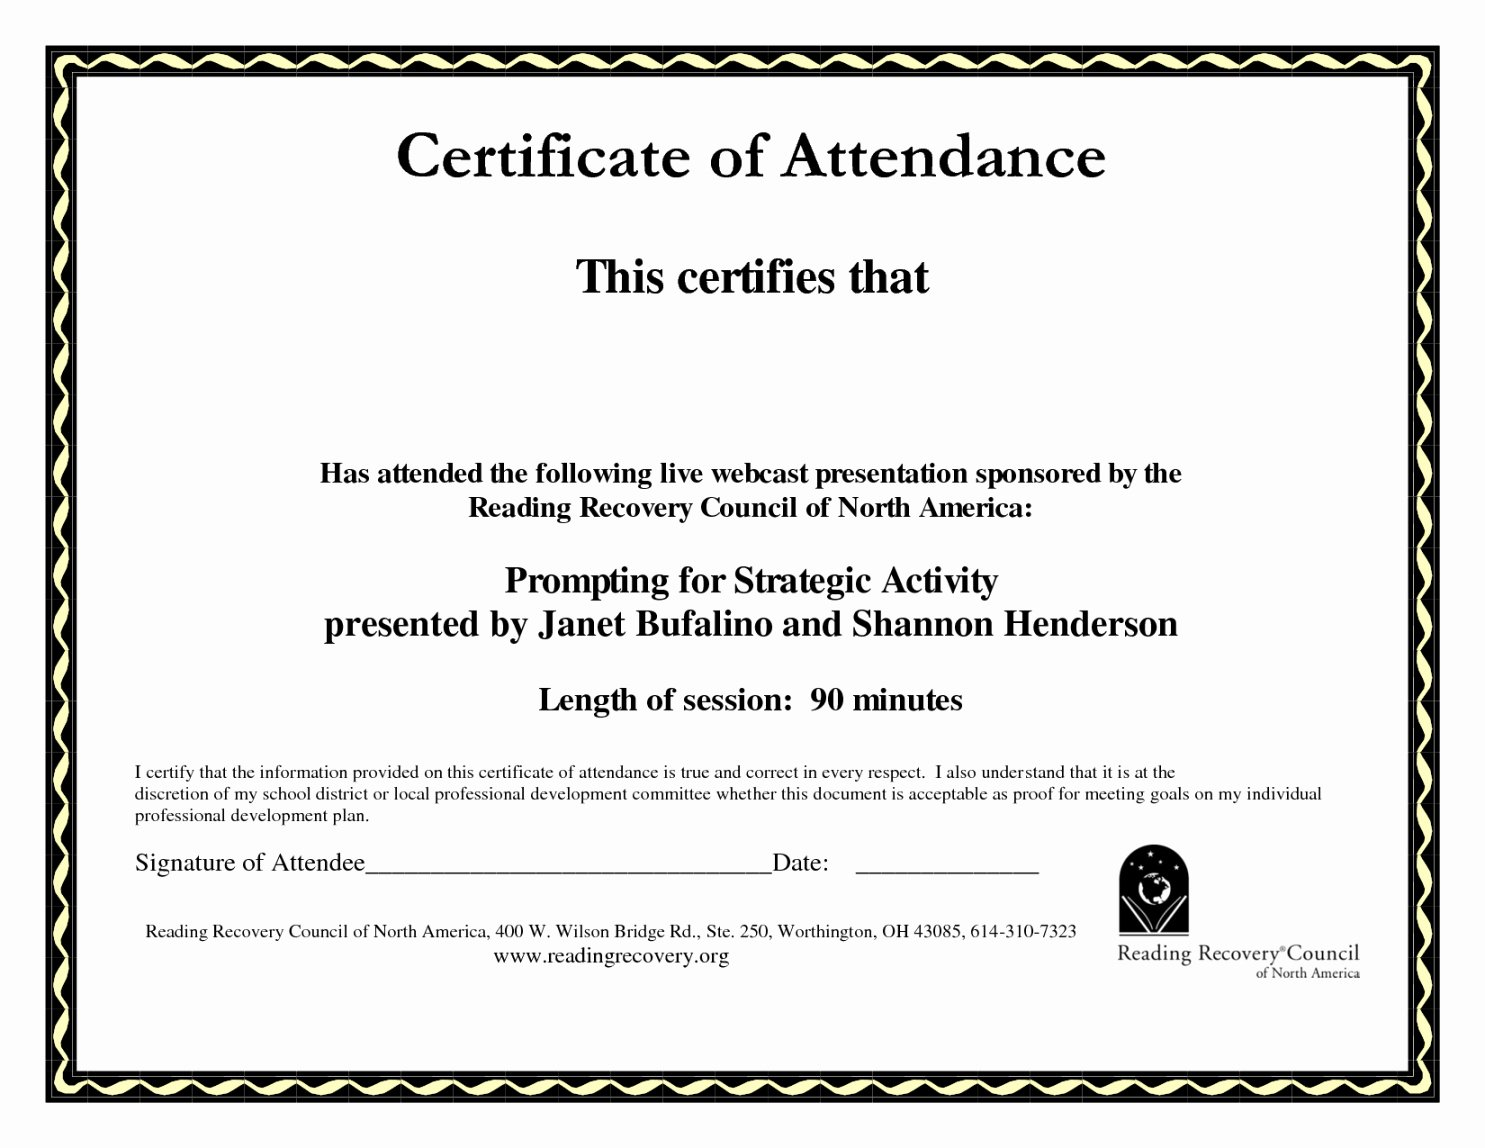 Perfect attendance Certificate Printable Luxury Certificate Perfect attendance Template